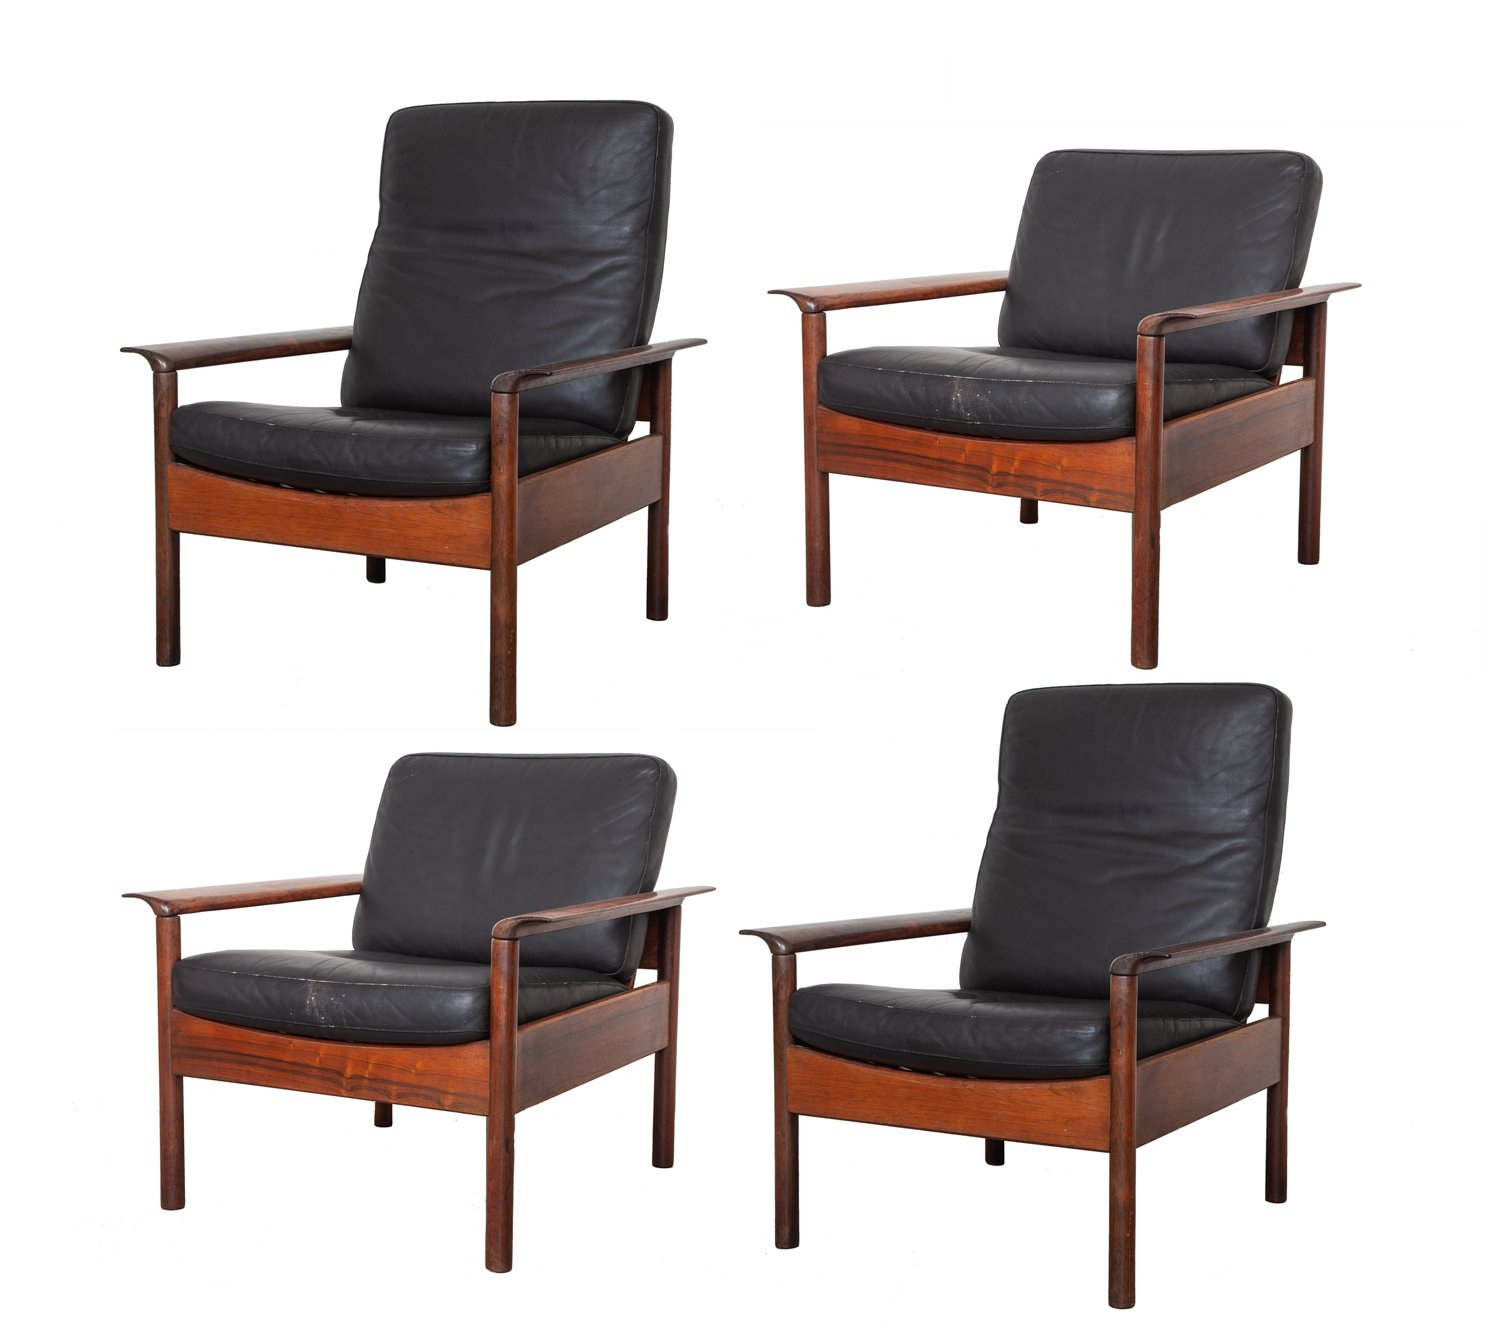 Rosewood & Black leather Livingroom set by Otto Hans Olsen, 1950s